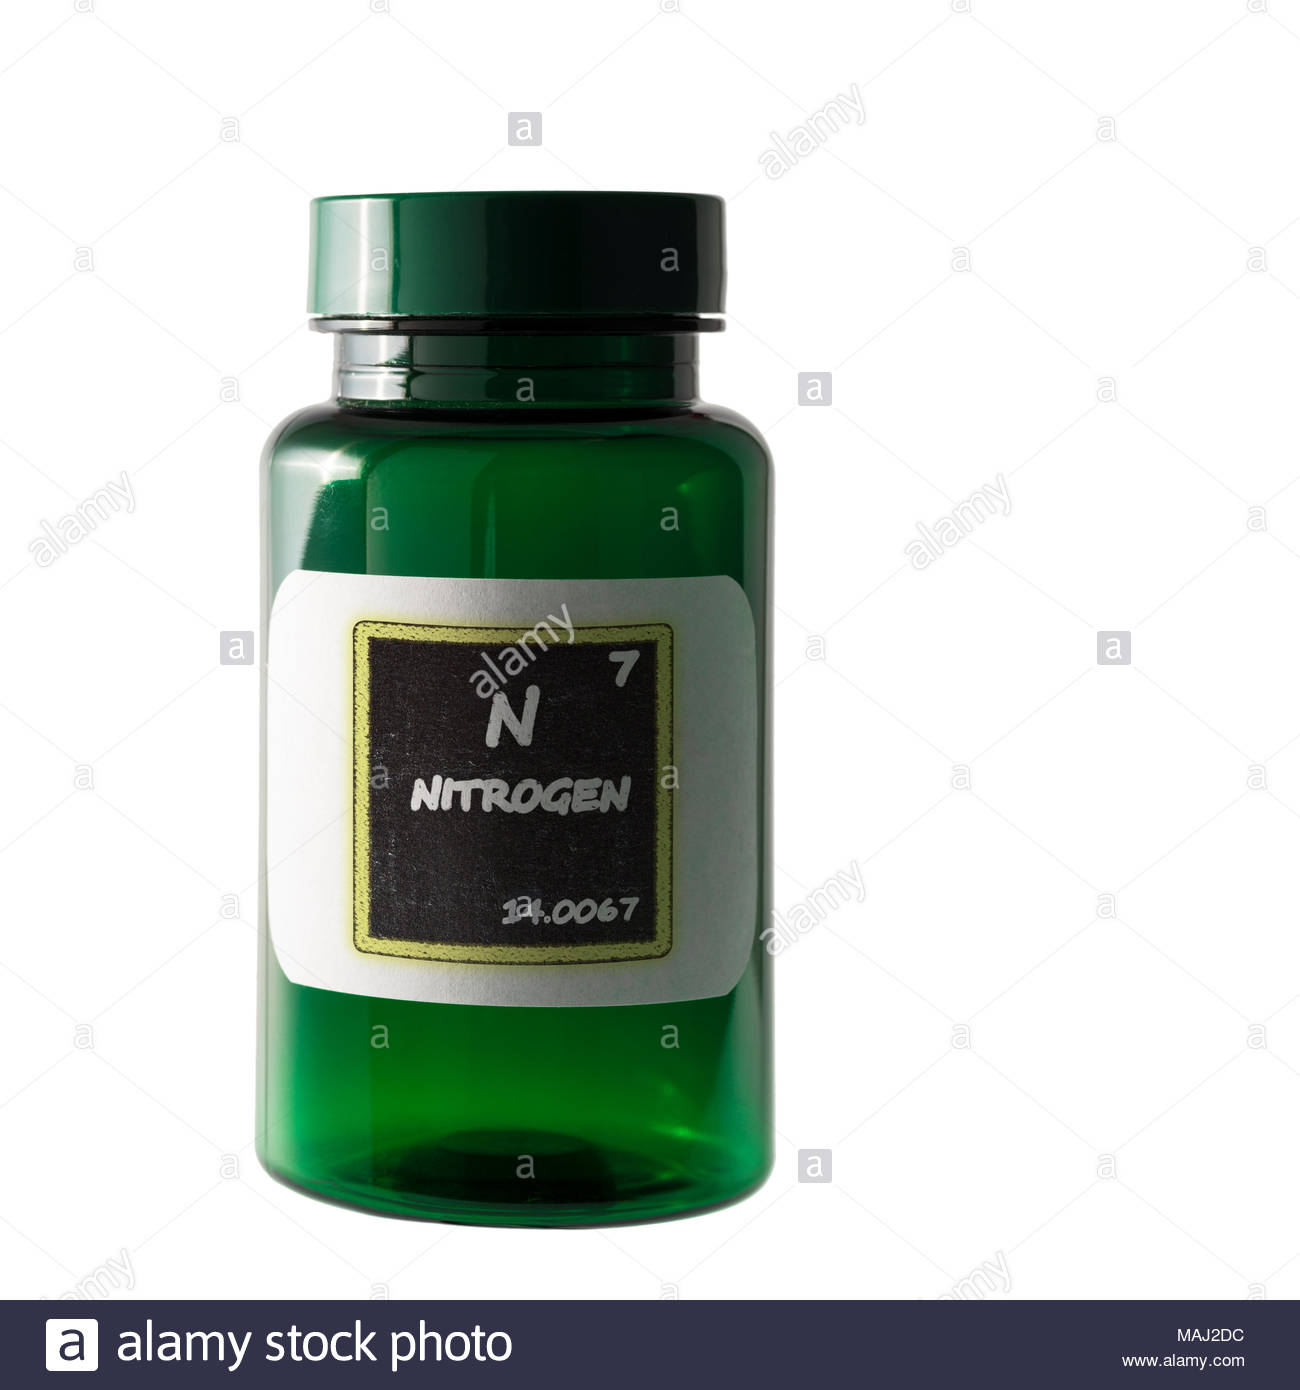 nitrogen periodic table details shown on bottle label stock image